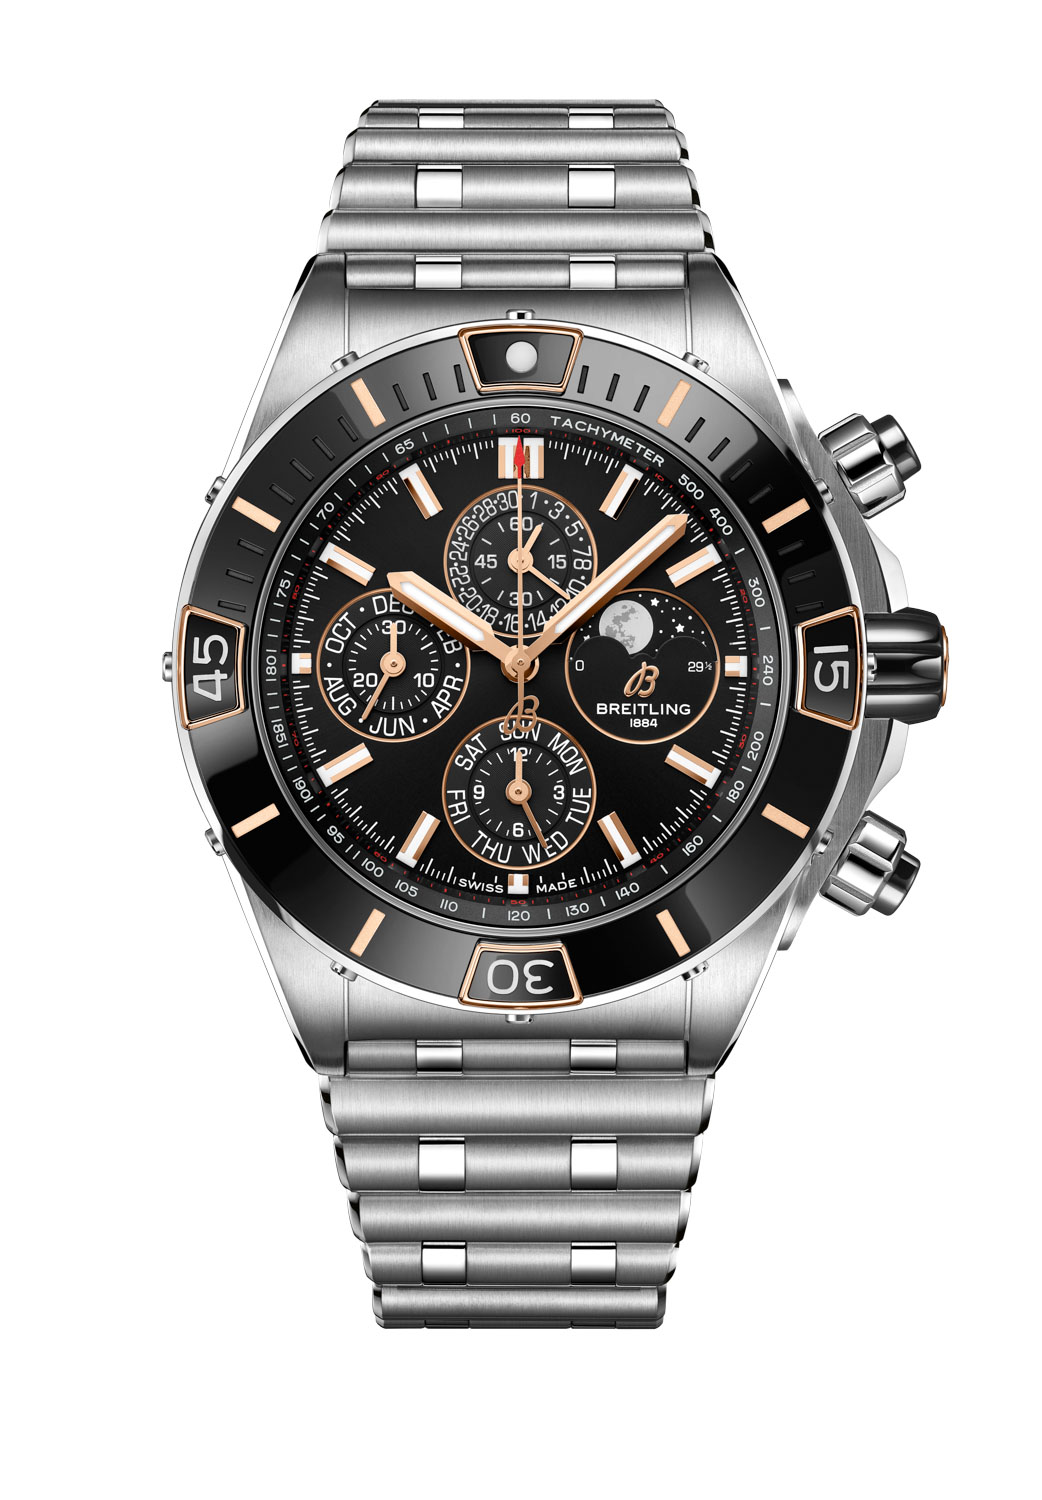 Super Chronomat 44 Four-Year Calendar fitted on a stainless-steel Rouleaux bracelet with butterfly clasp